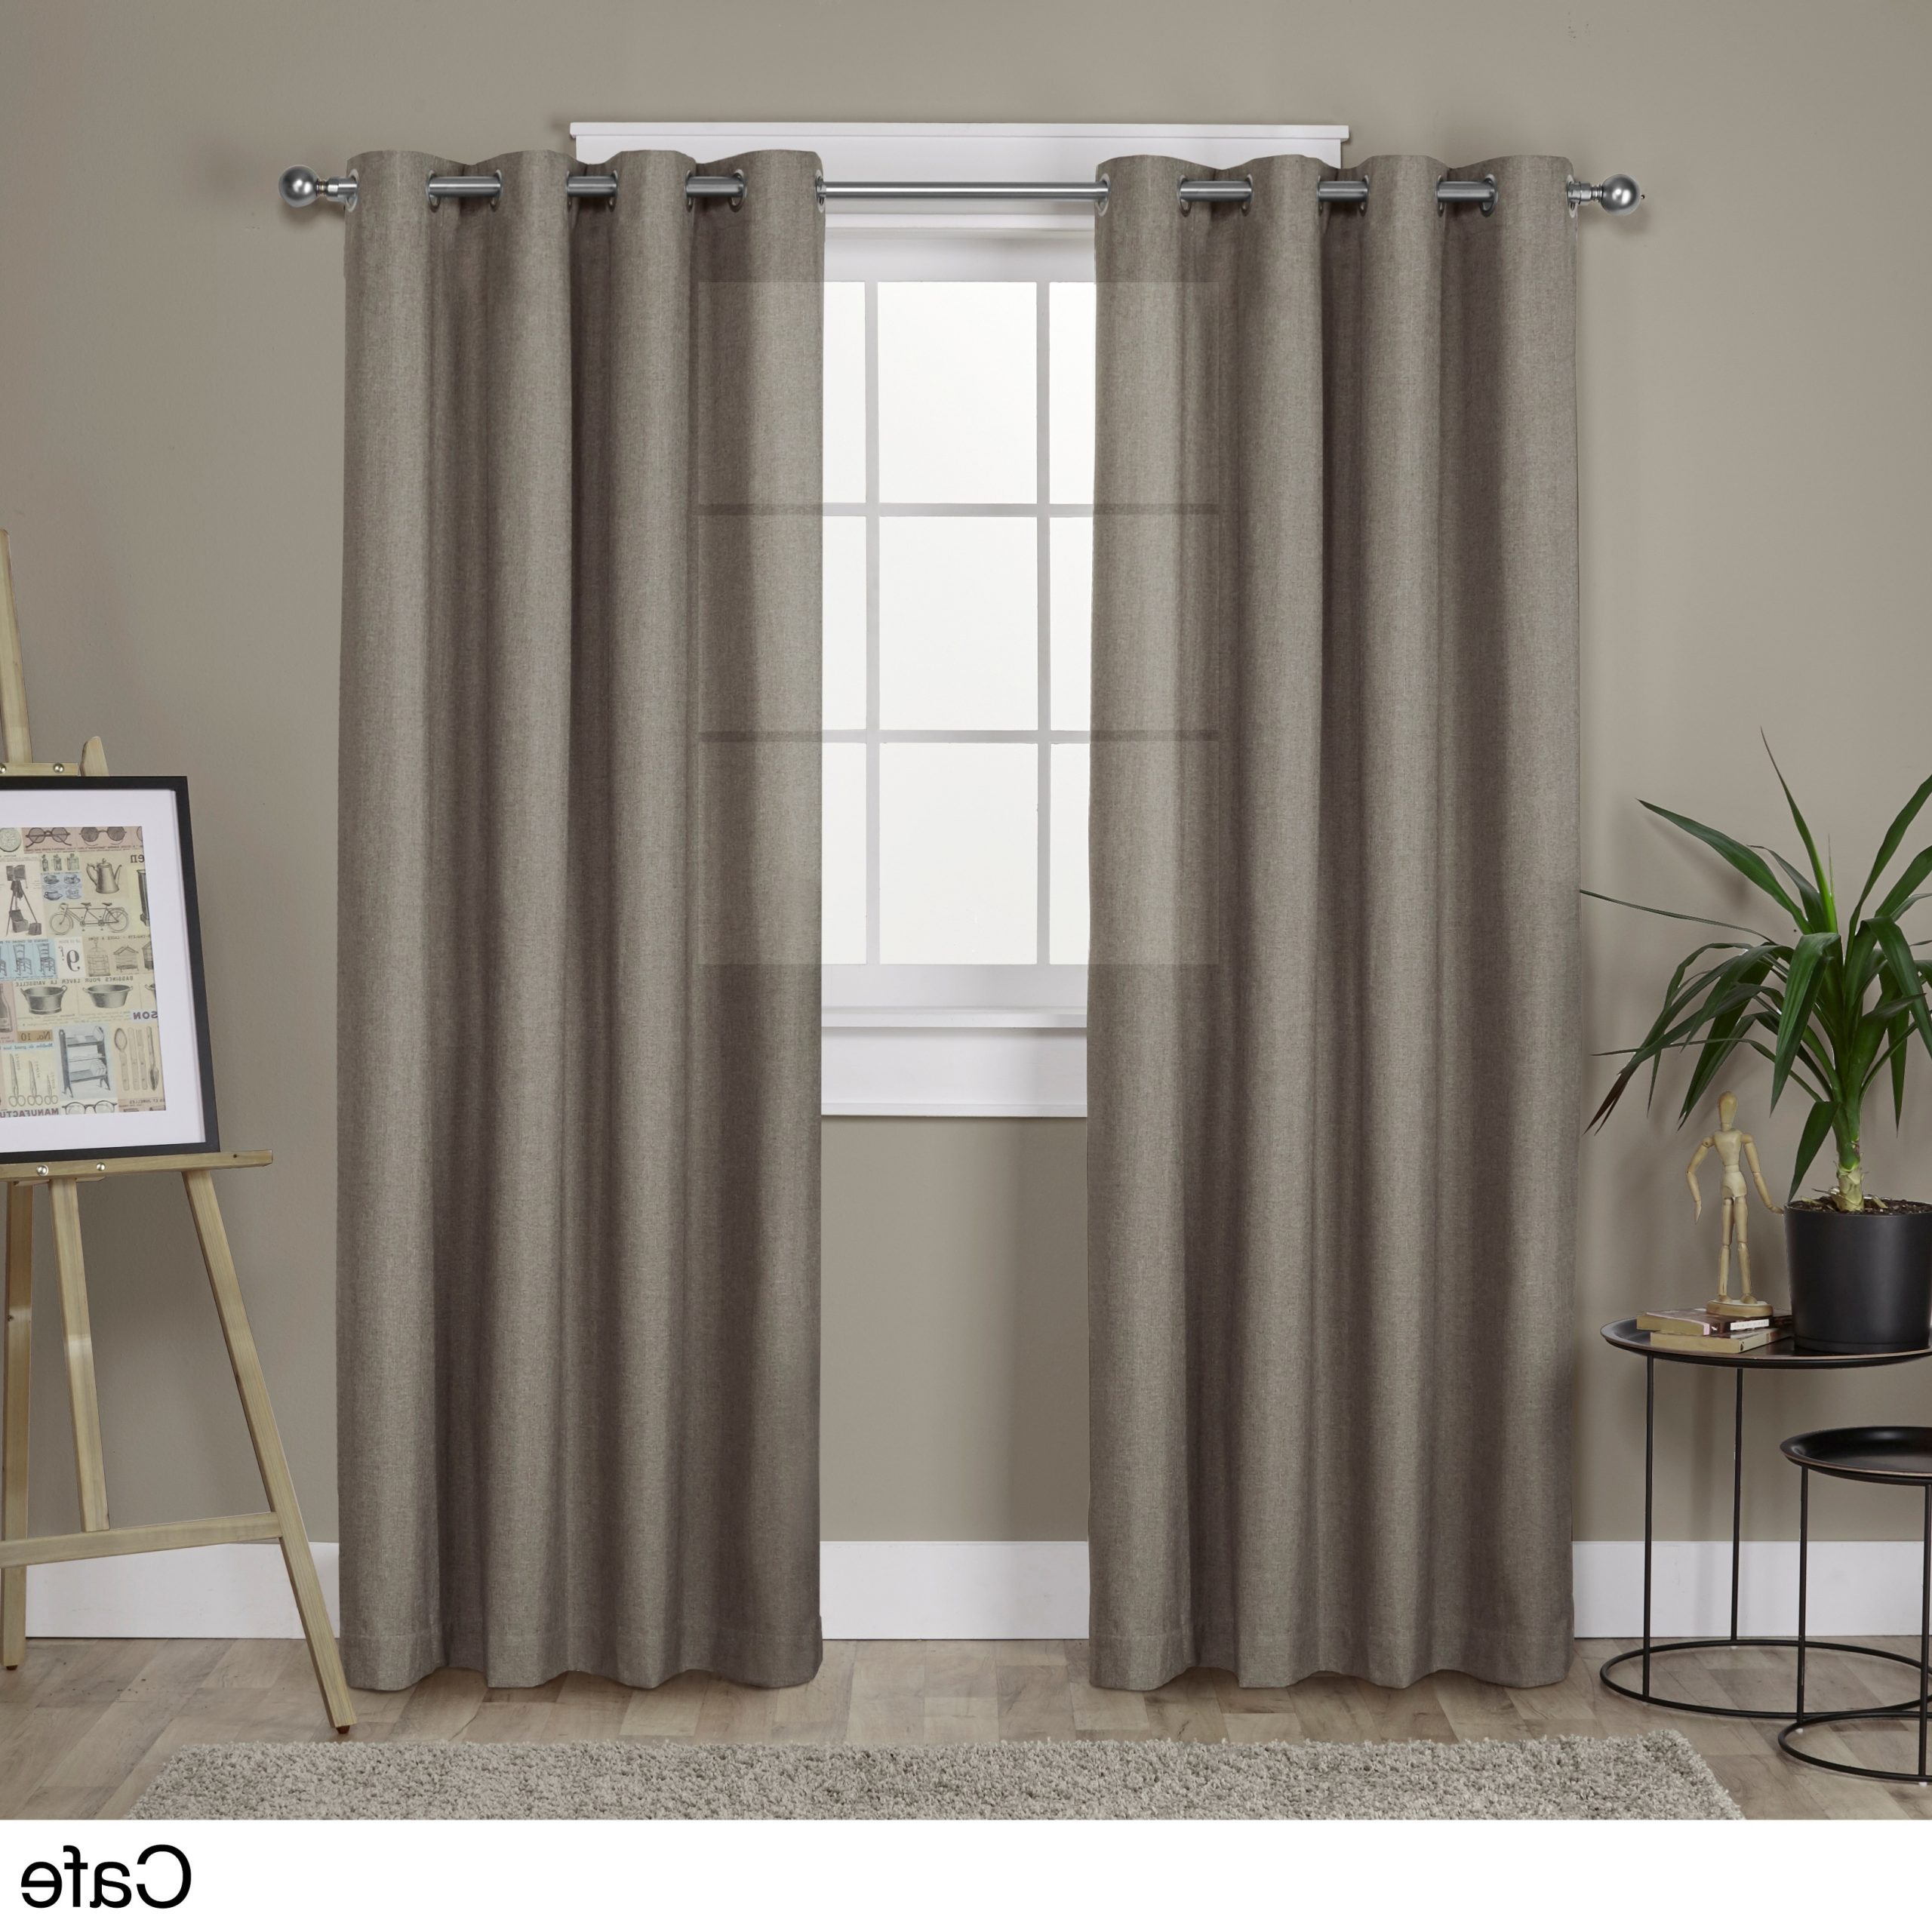 Sugar Creek Grommet Top Loha Linen Window Curtain Panel Pairs For Popular Porch & Den Sugar Creek Grommet Top Loha Linen Window (View 14 of 20)